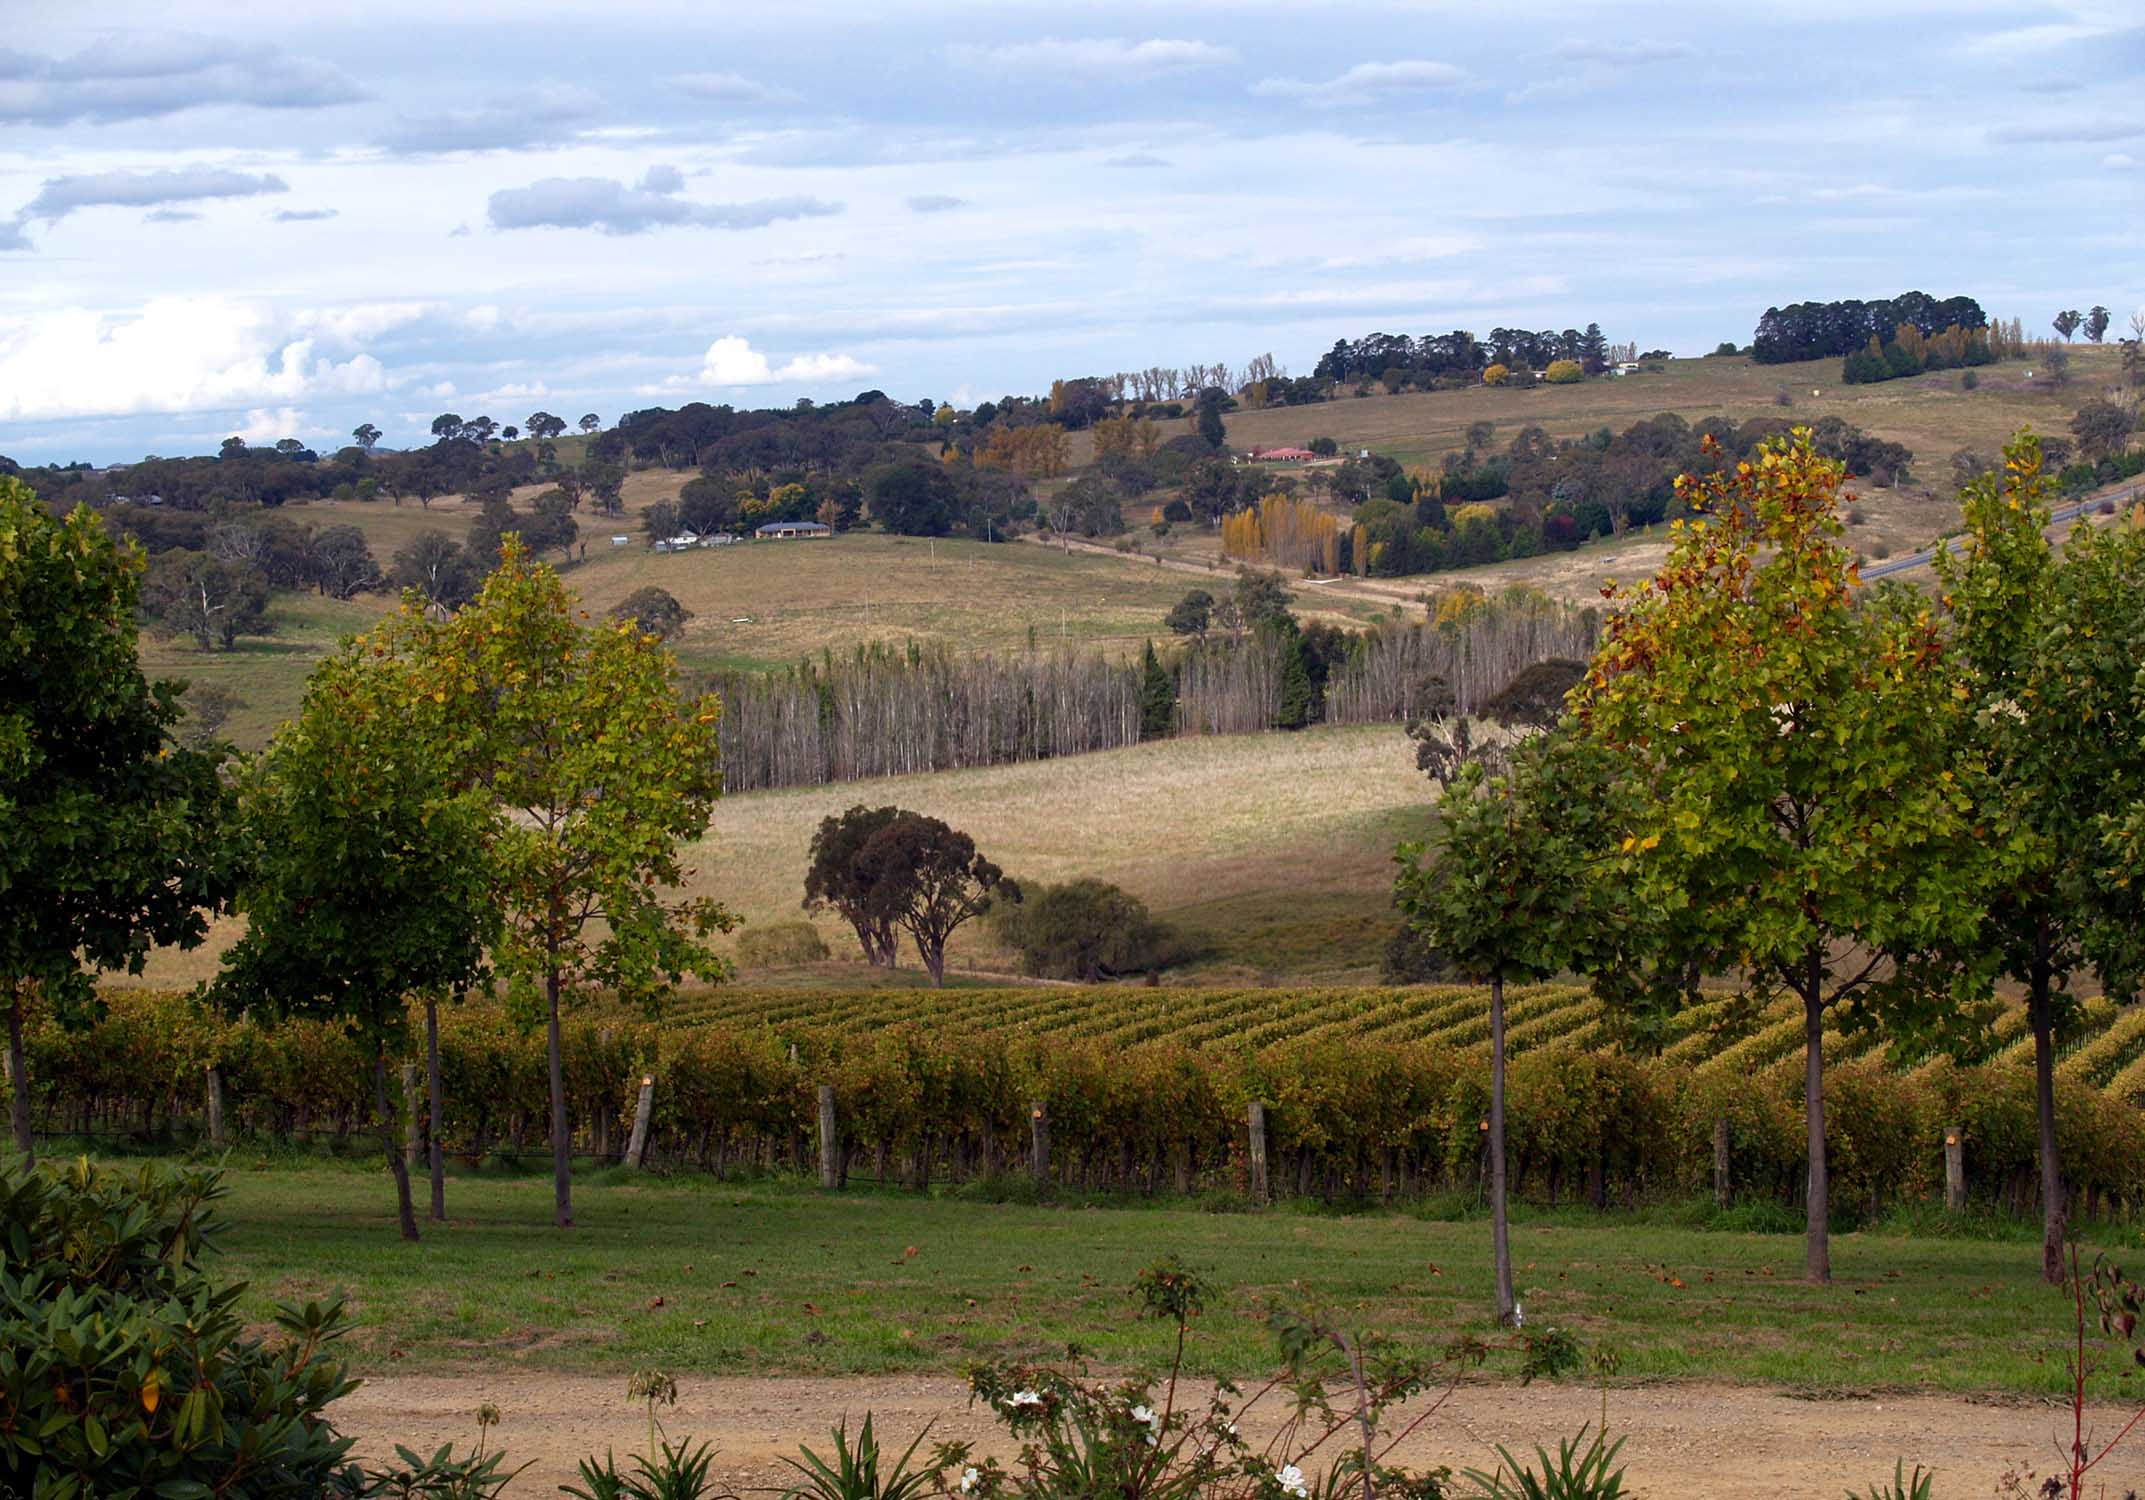 Vineyard scenery in Orange, New South Wales.